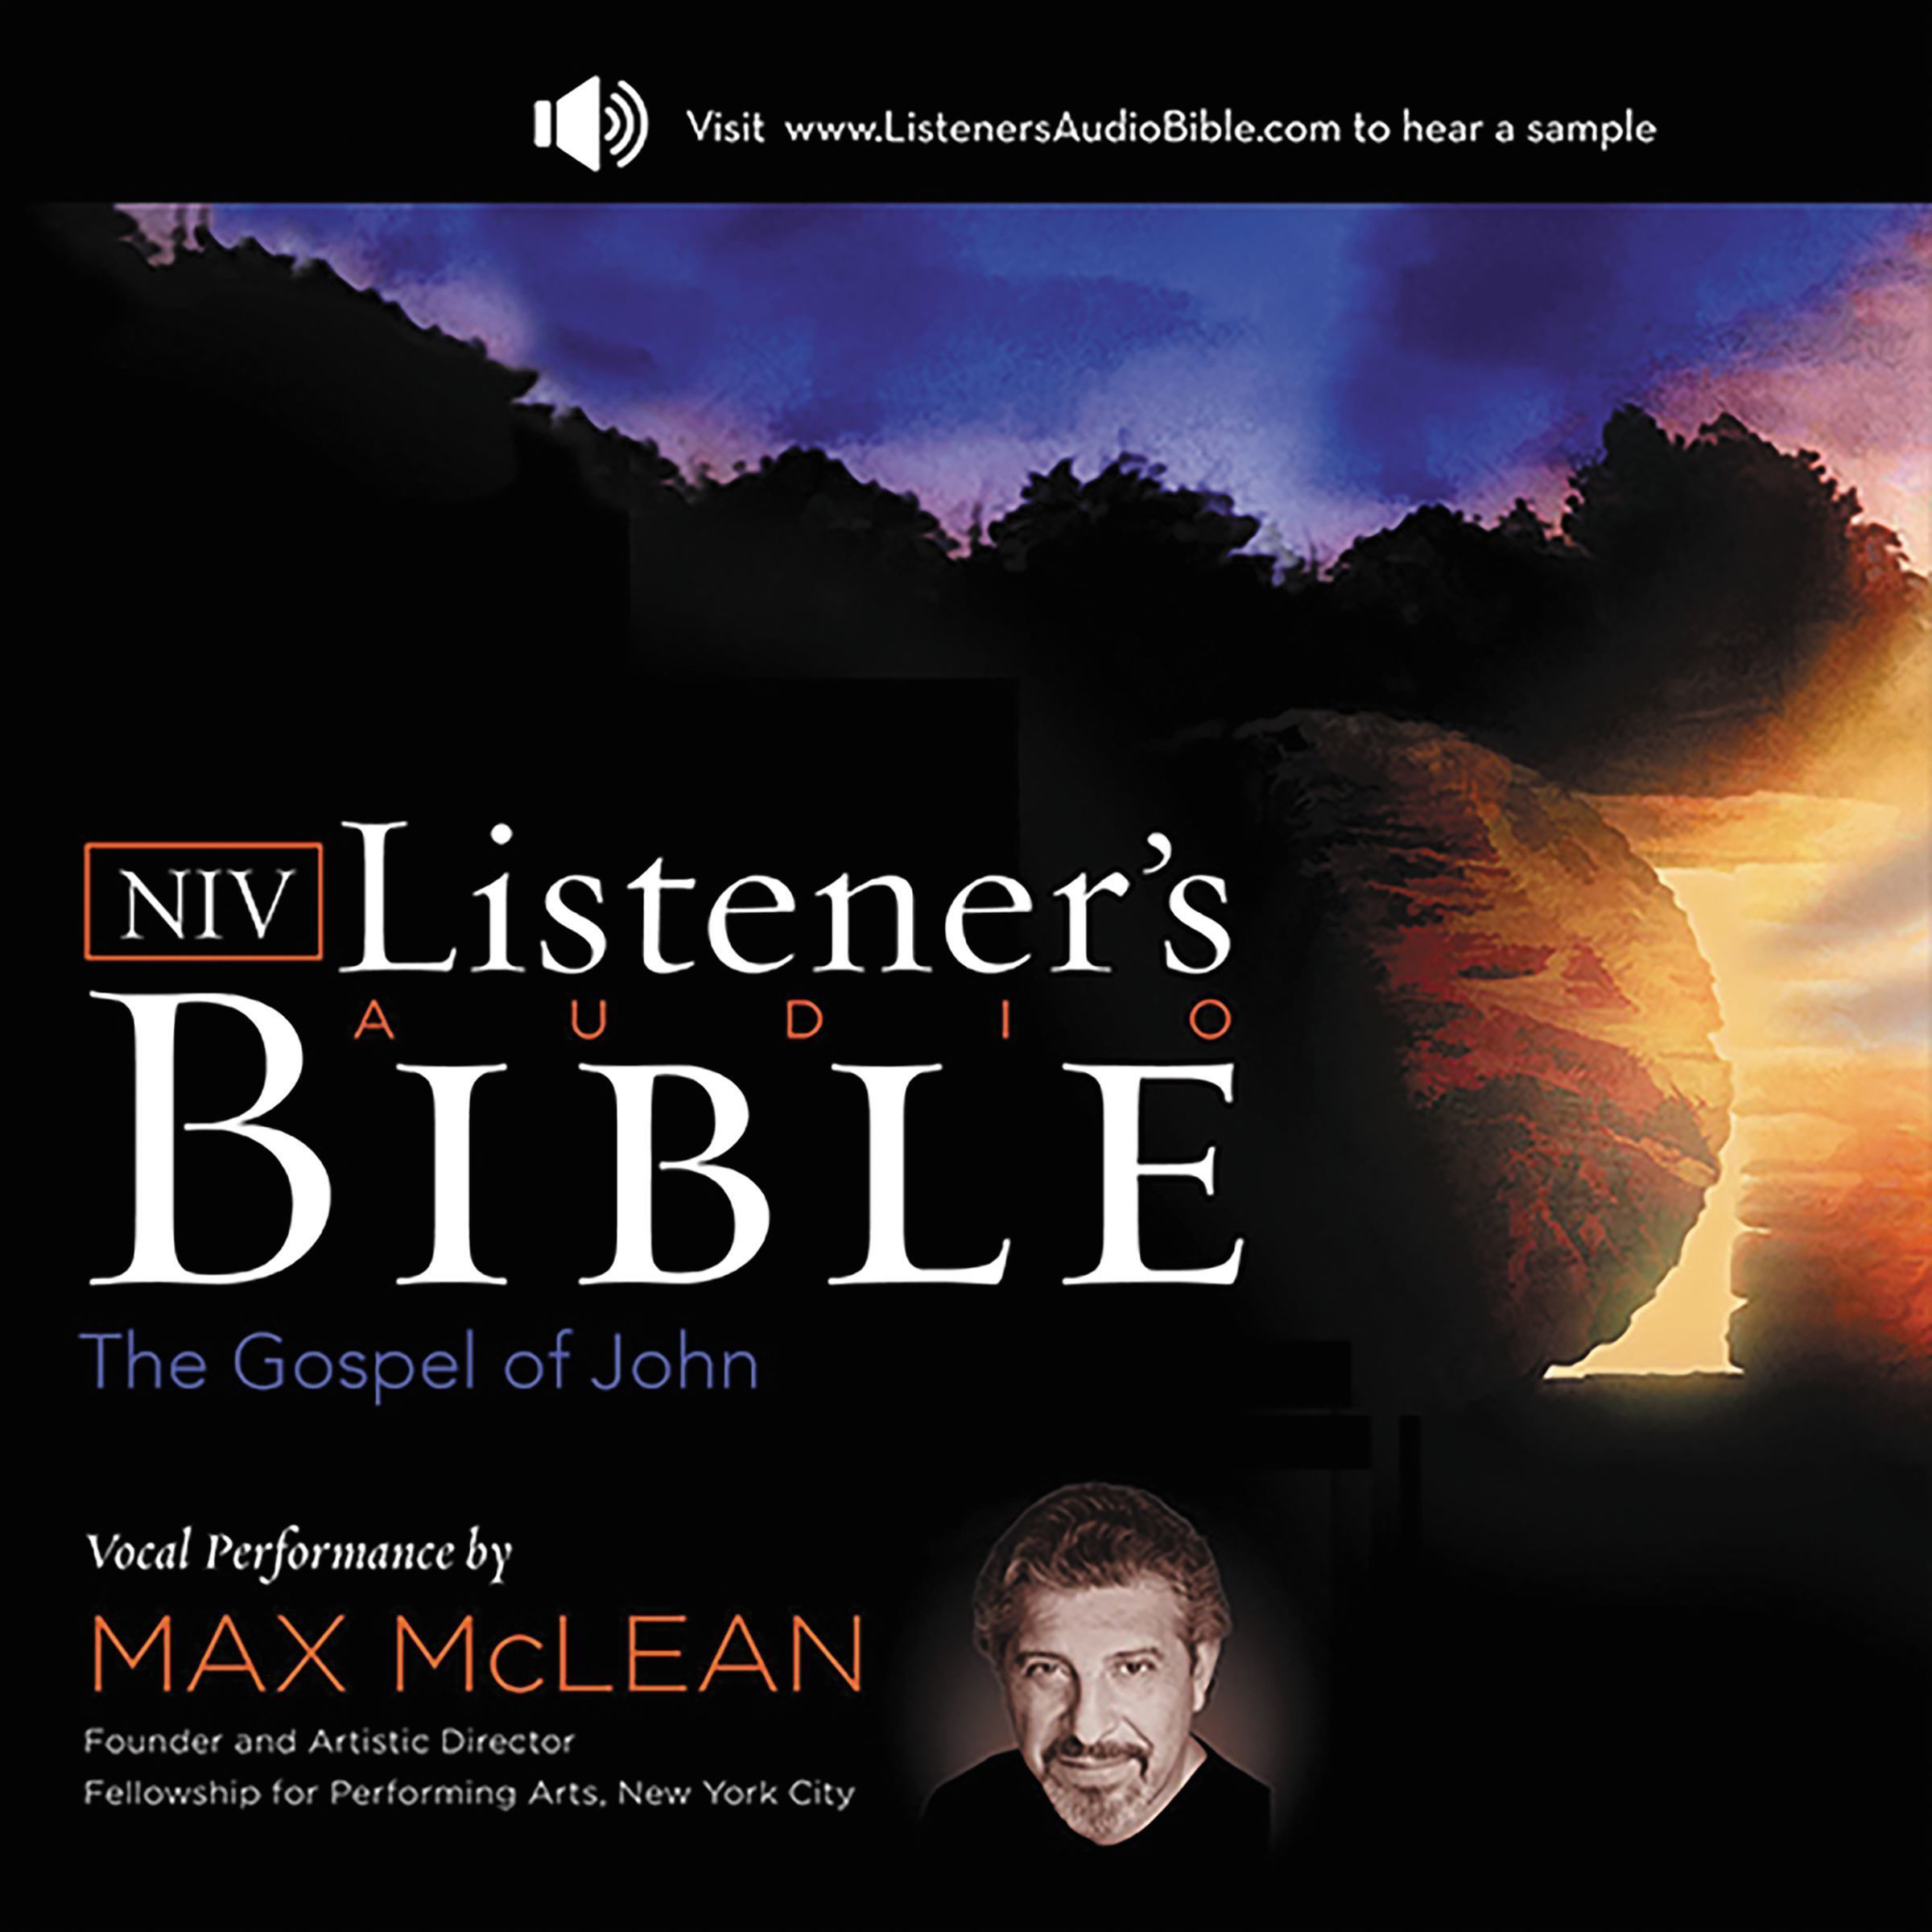 Printable NIV, Listener's Audio Bible, Gospel of John, Audio Download: Vocal Performance by Max McLean Audiobook Cover Art